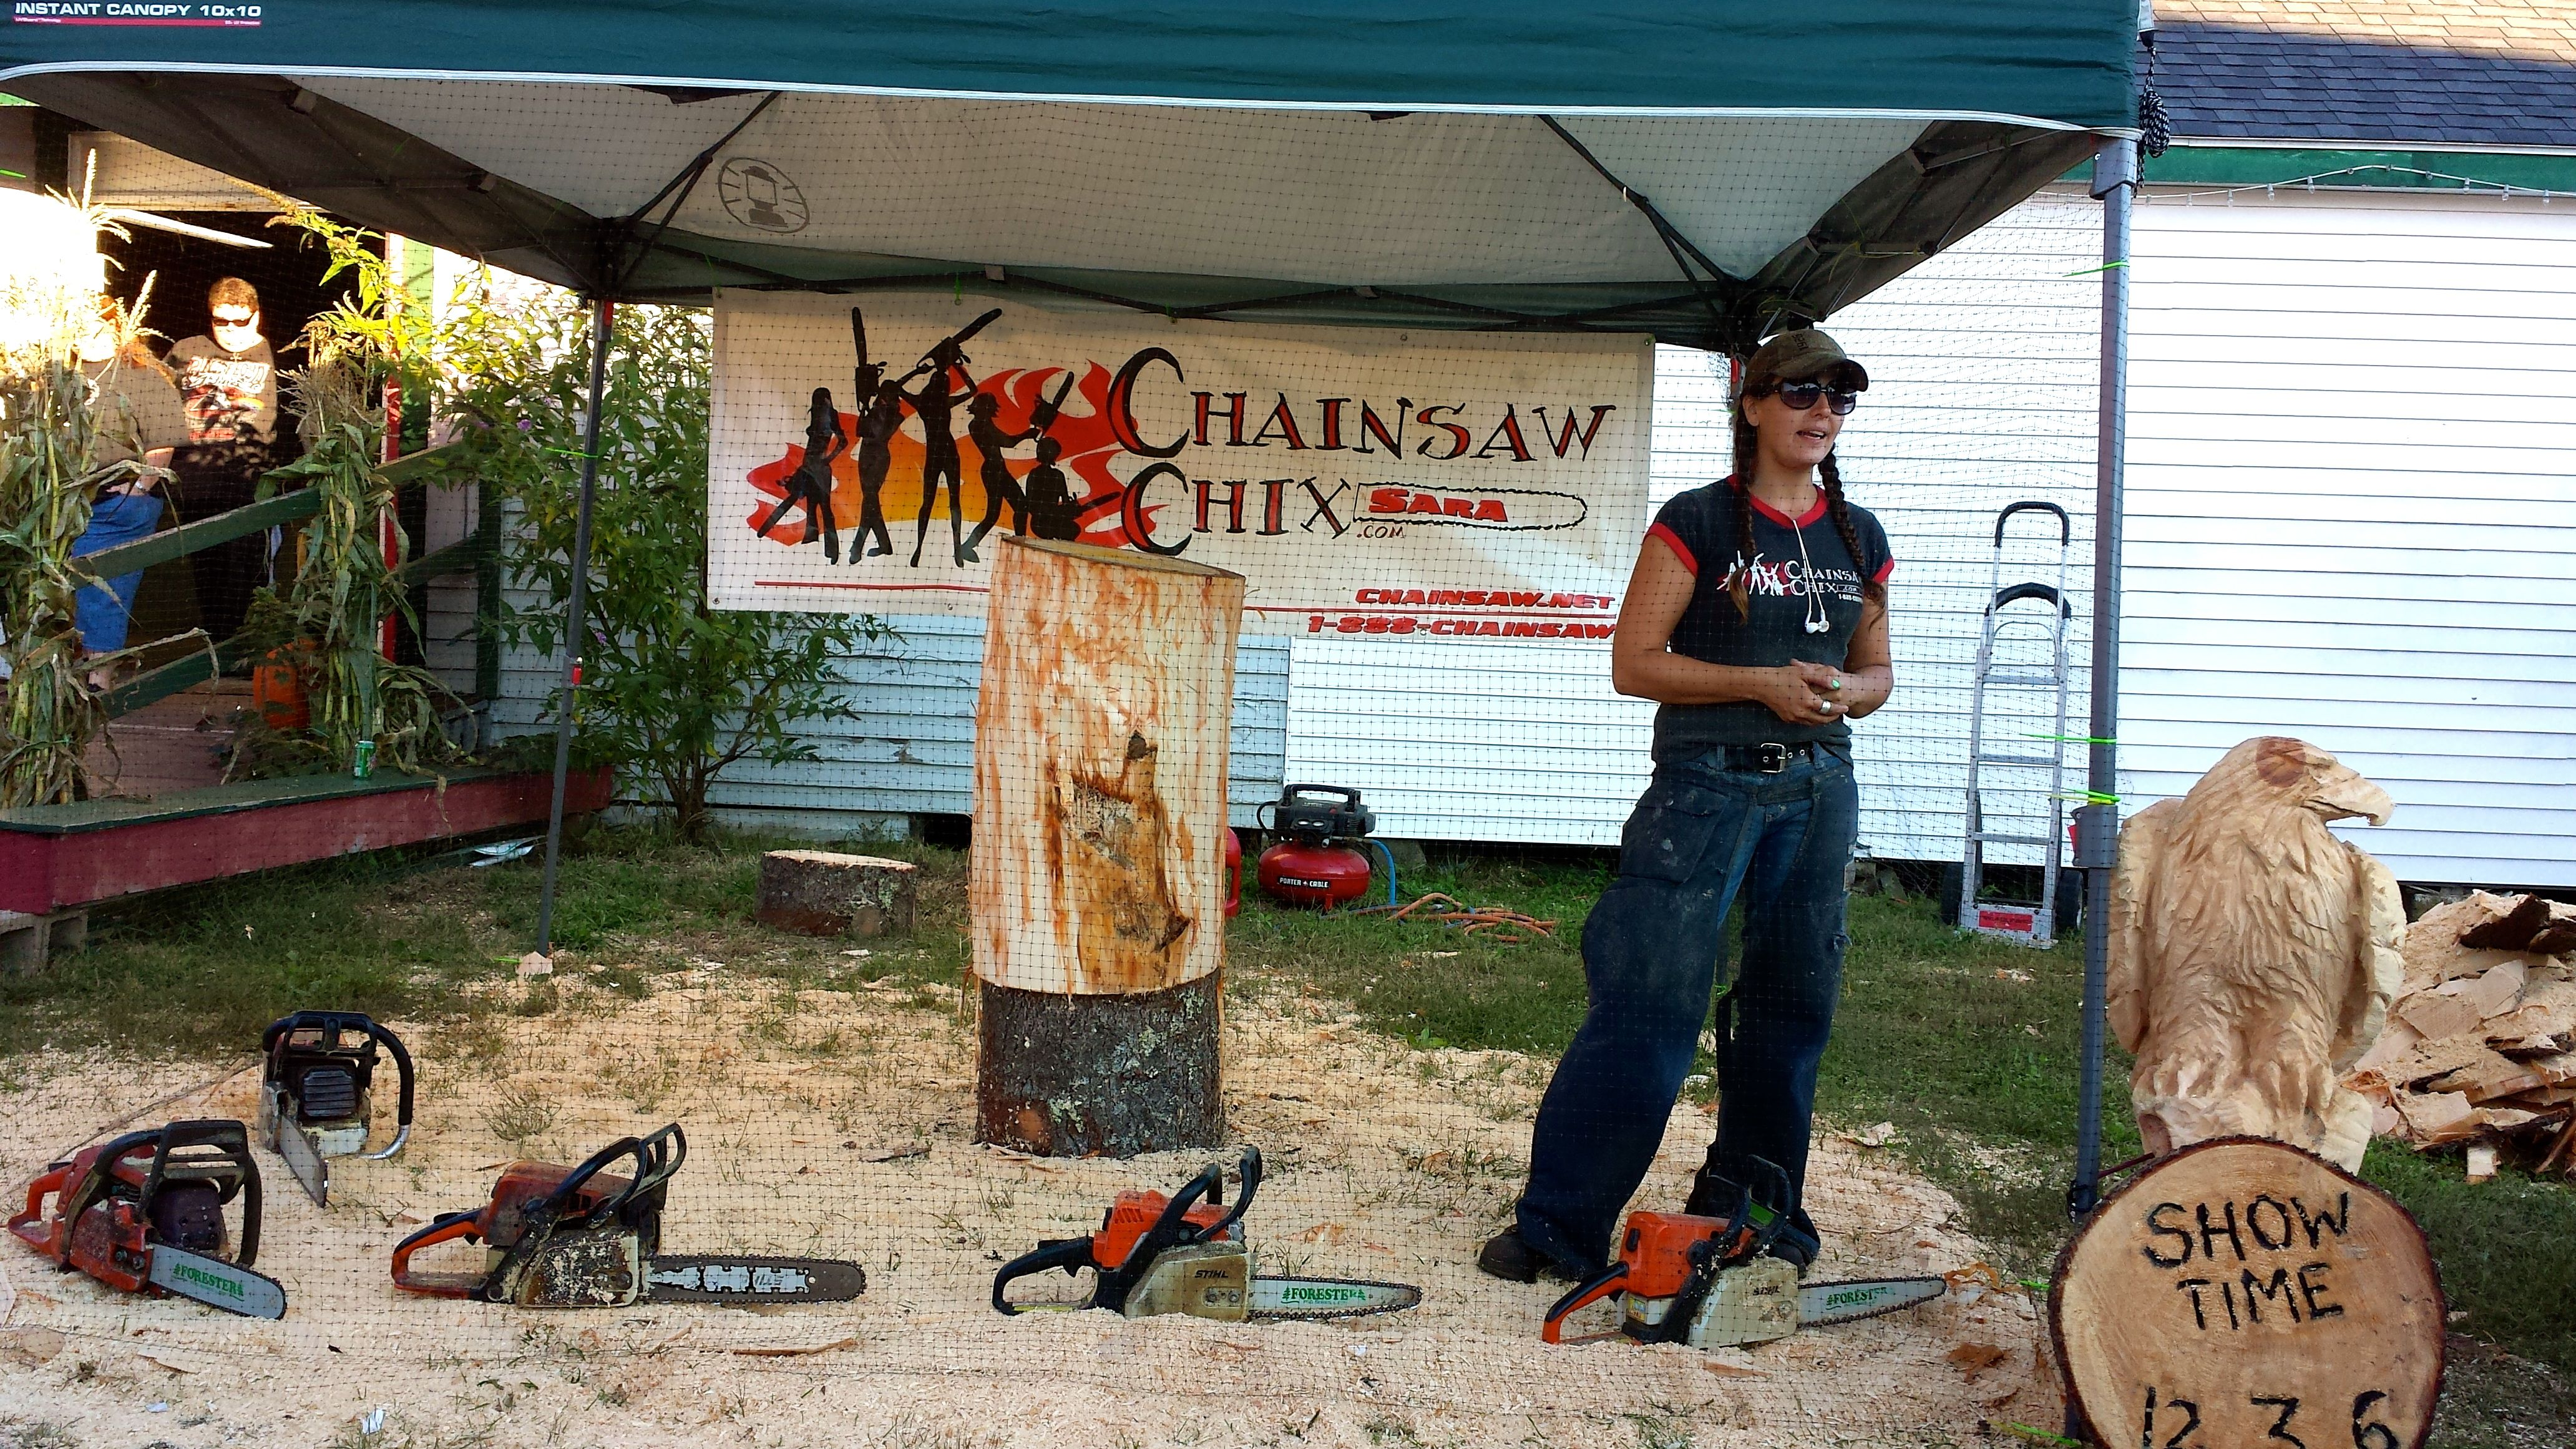 The chainsaw and the sea turtle u2013 roadsight relics